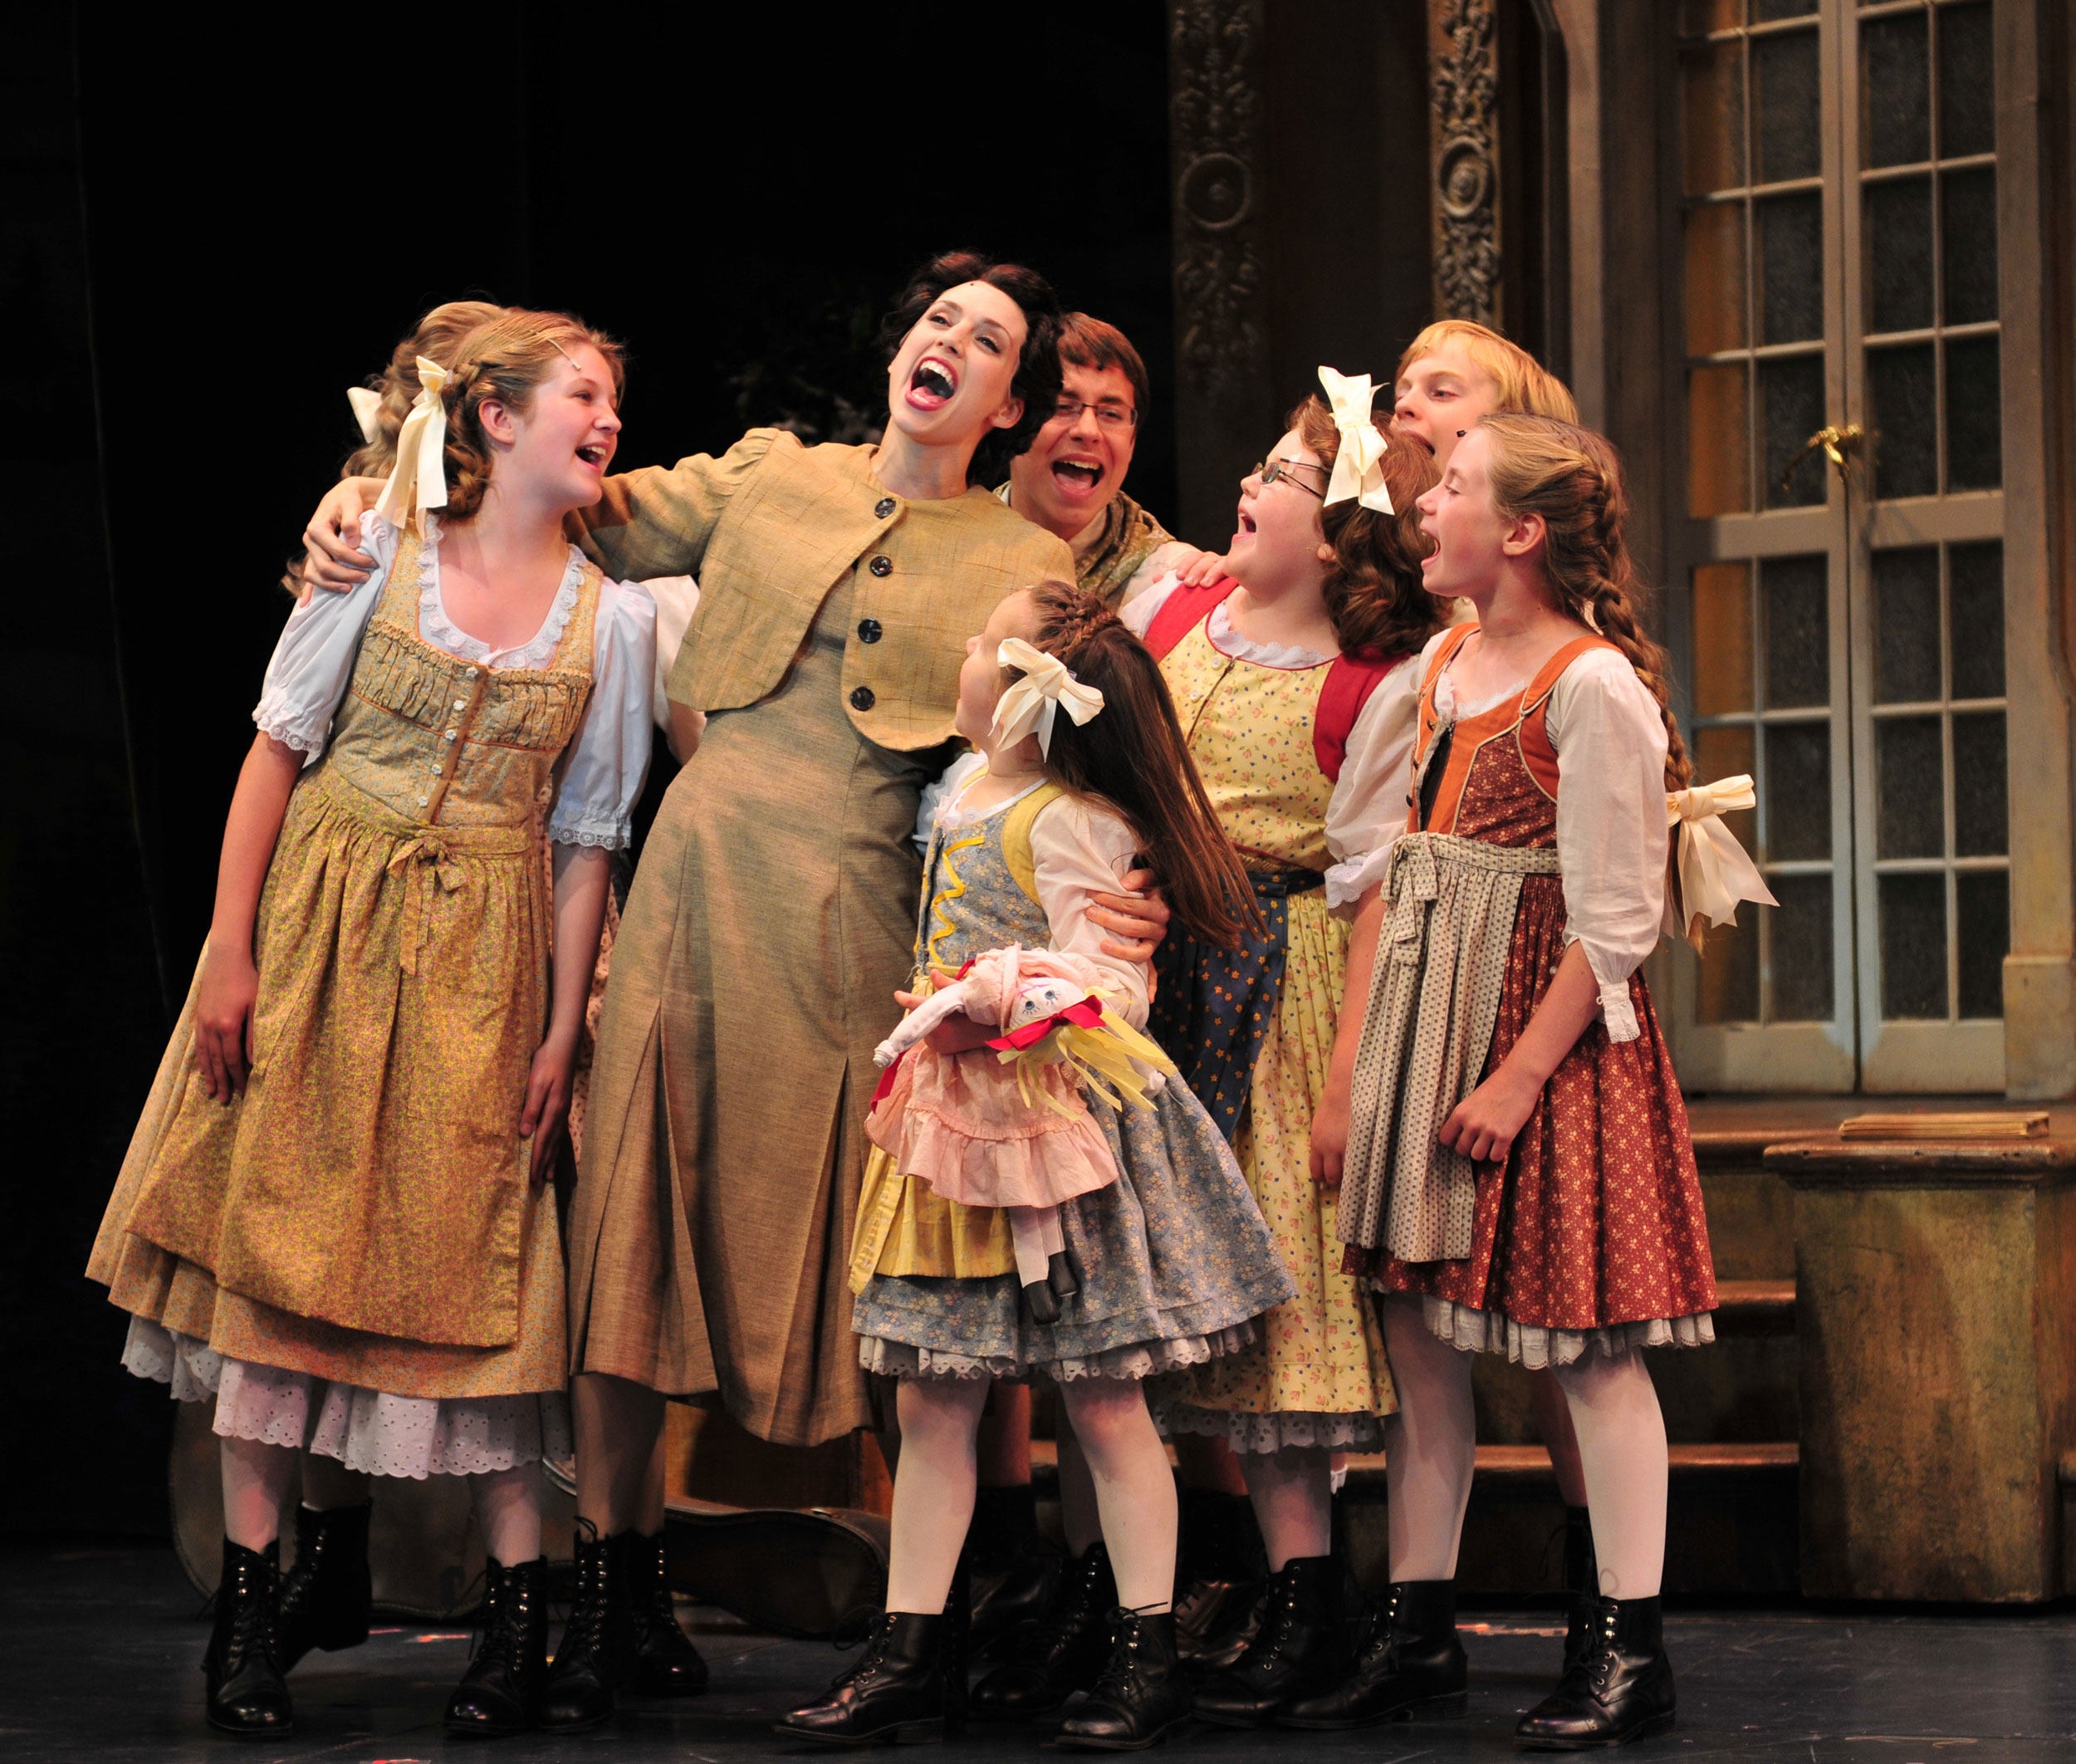 2010_OP_The-Sound-of-Music_Gail-Bennett_as_Maria_with_von-Trapp-Children_photo-by_Gary-Ng_RGB.jpg